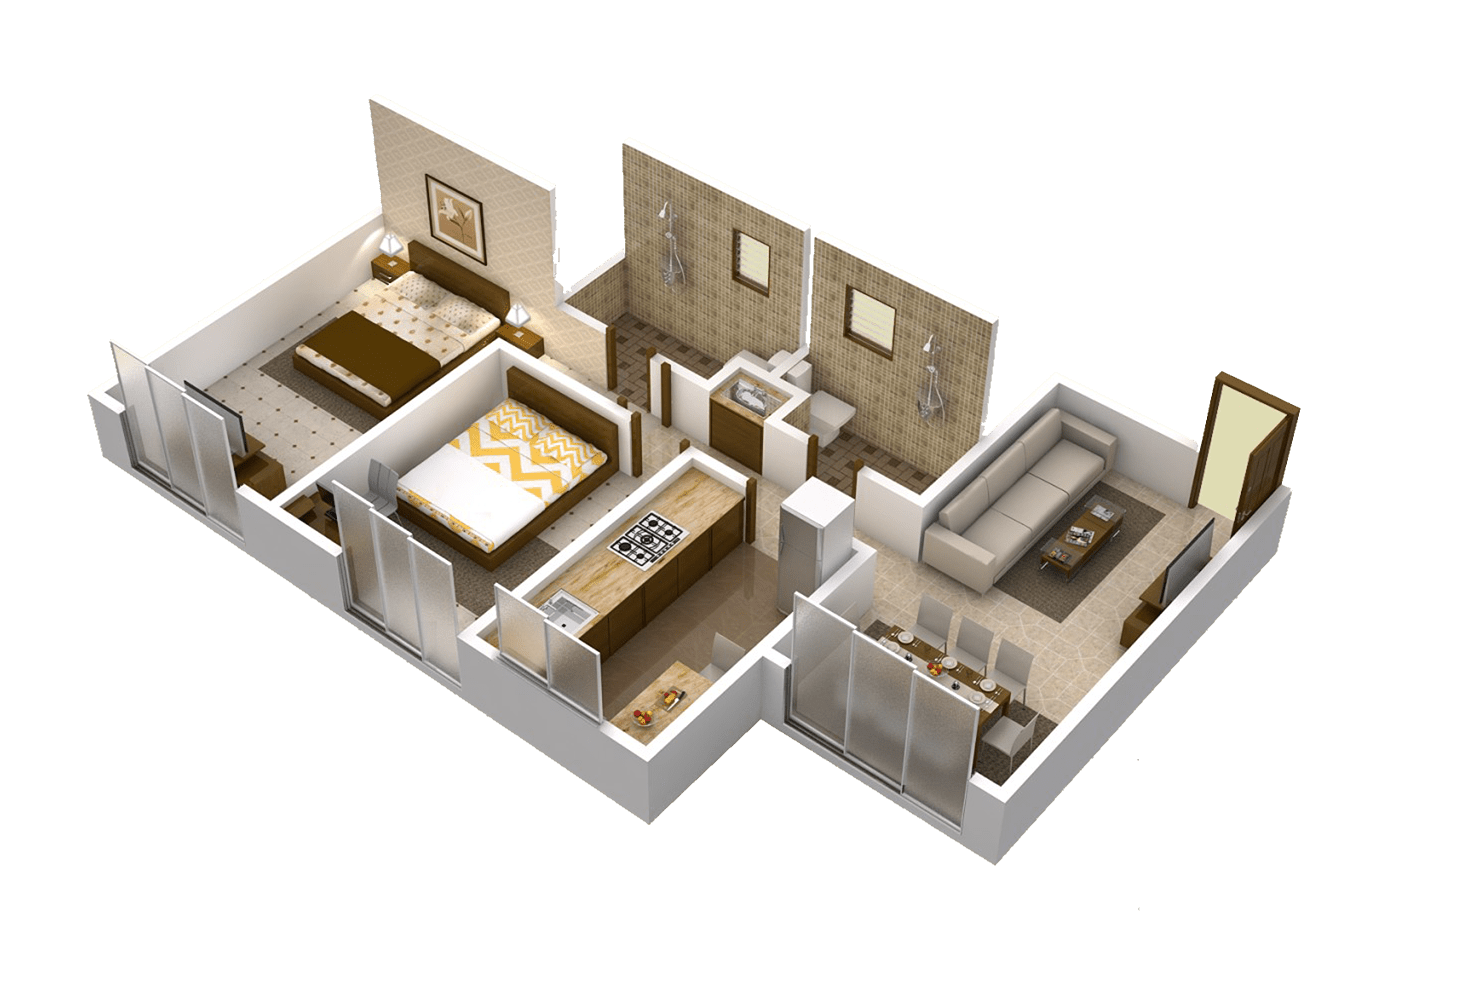 Matoshree Nisarg Floor Plans C wing 690 Sq.Ft. – Mulund East Property for Sale